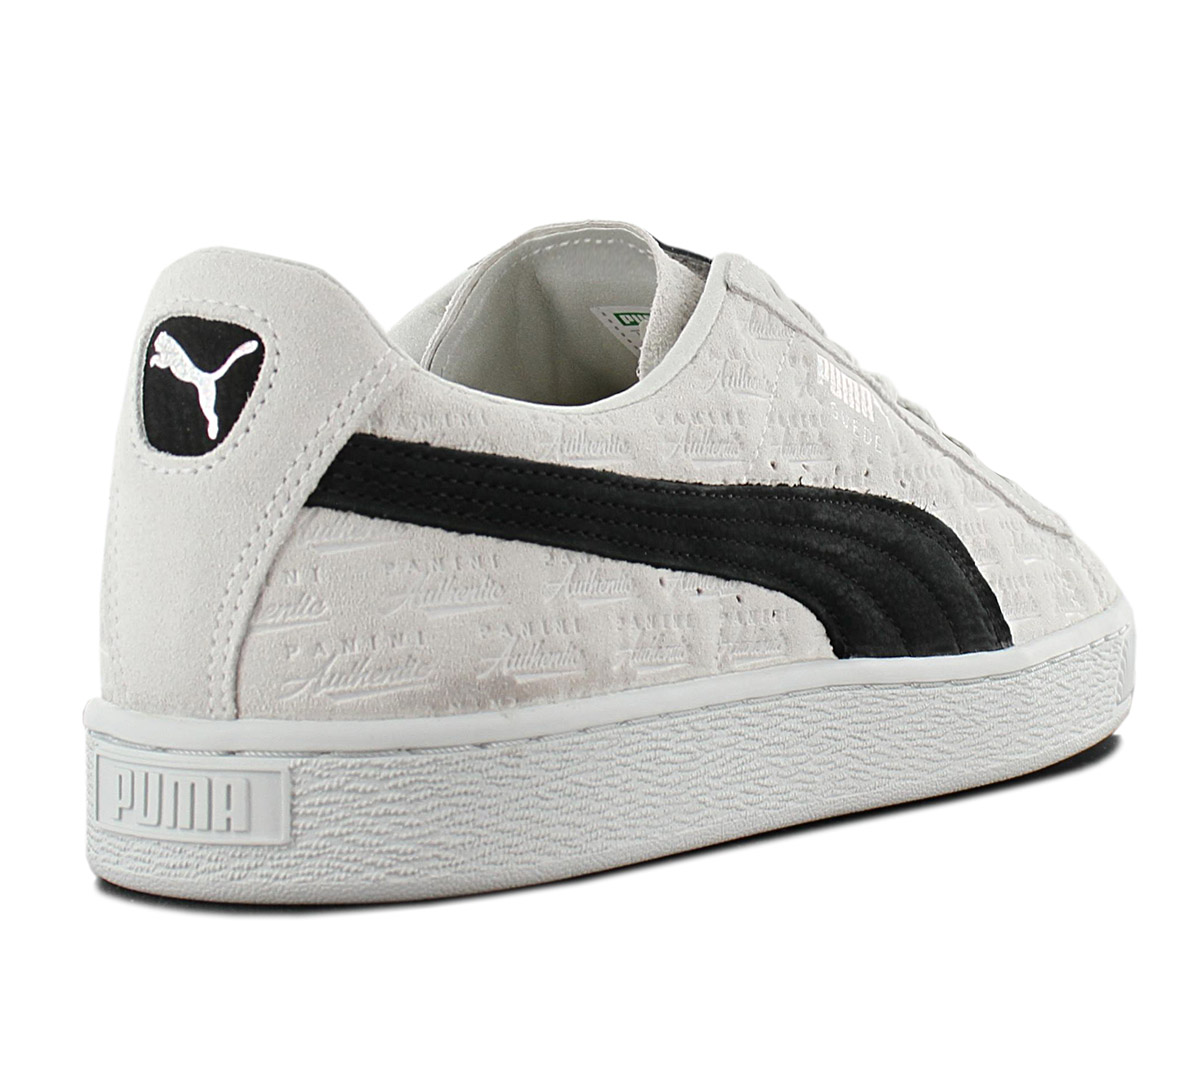 Details about Puma Suede Classic x Panini Men's Sneaker 366323 01 Grey Sneakers Shoes New